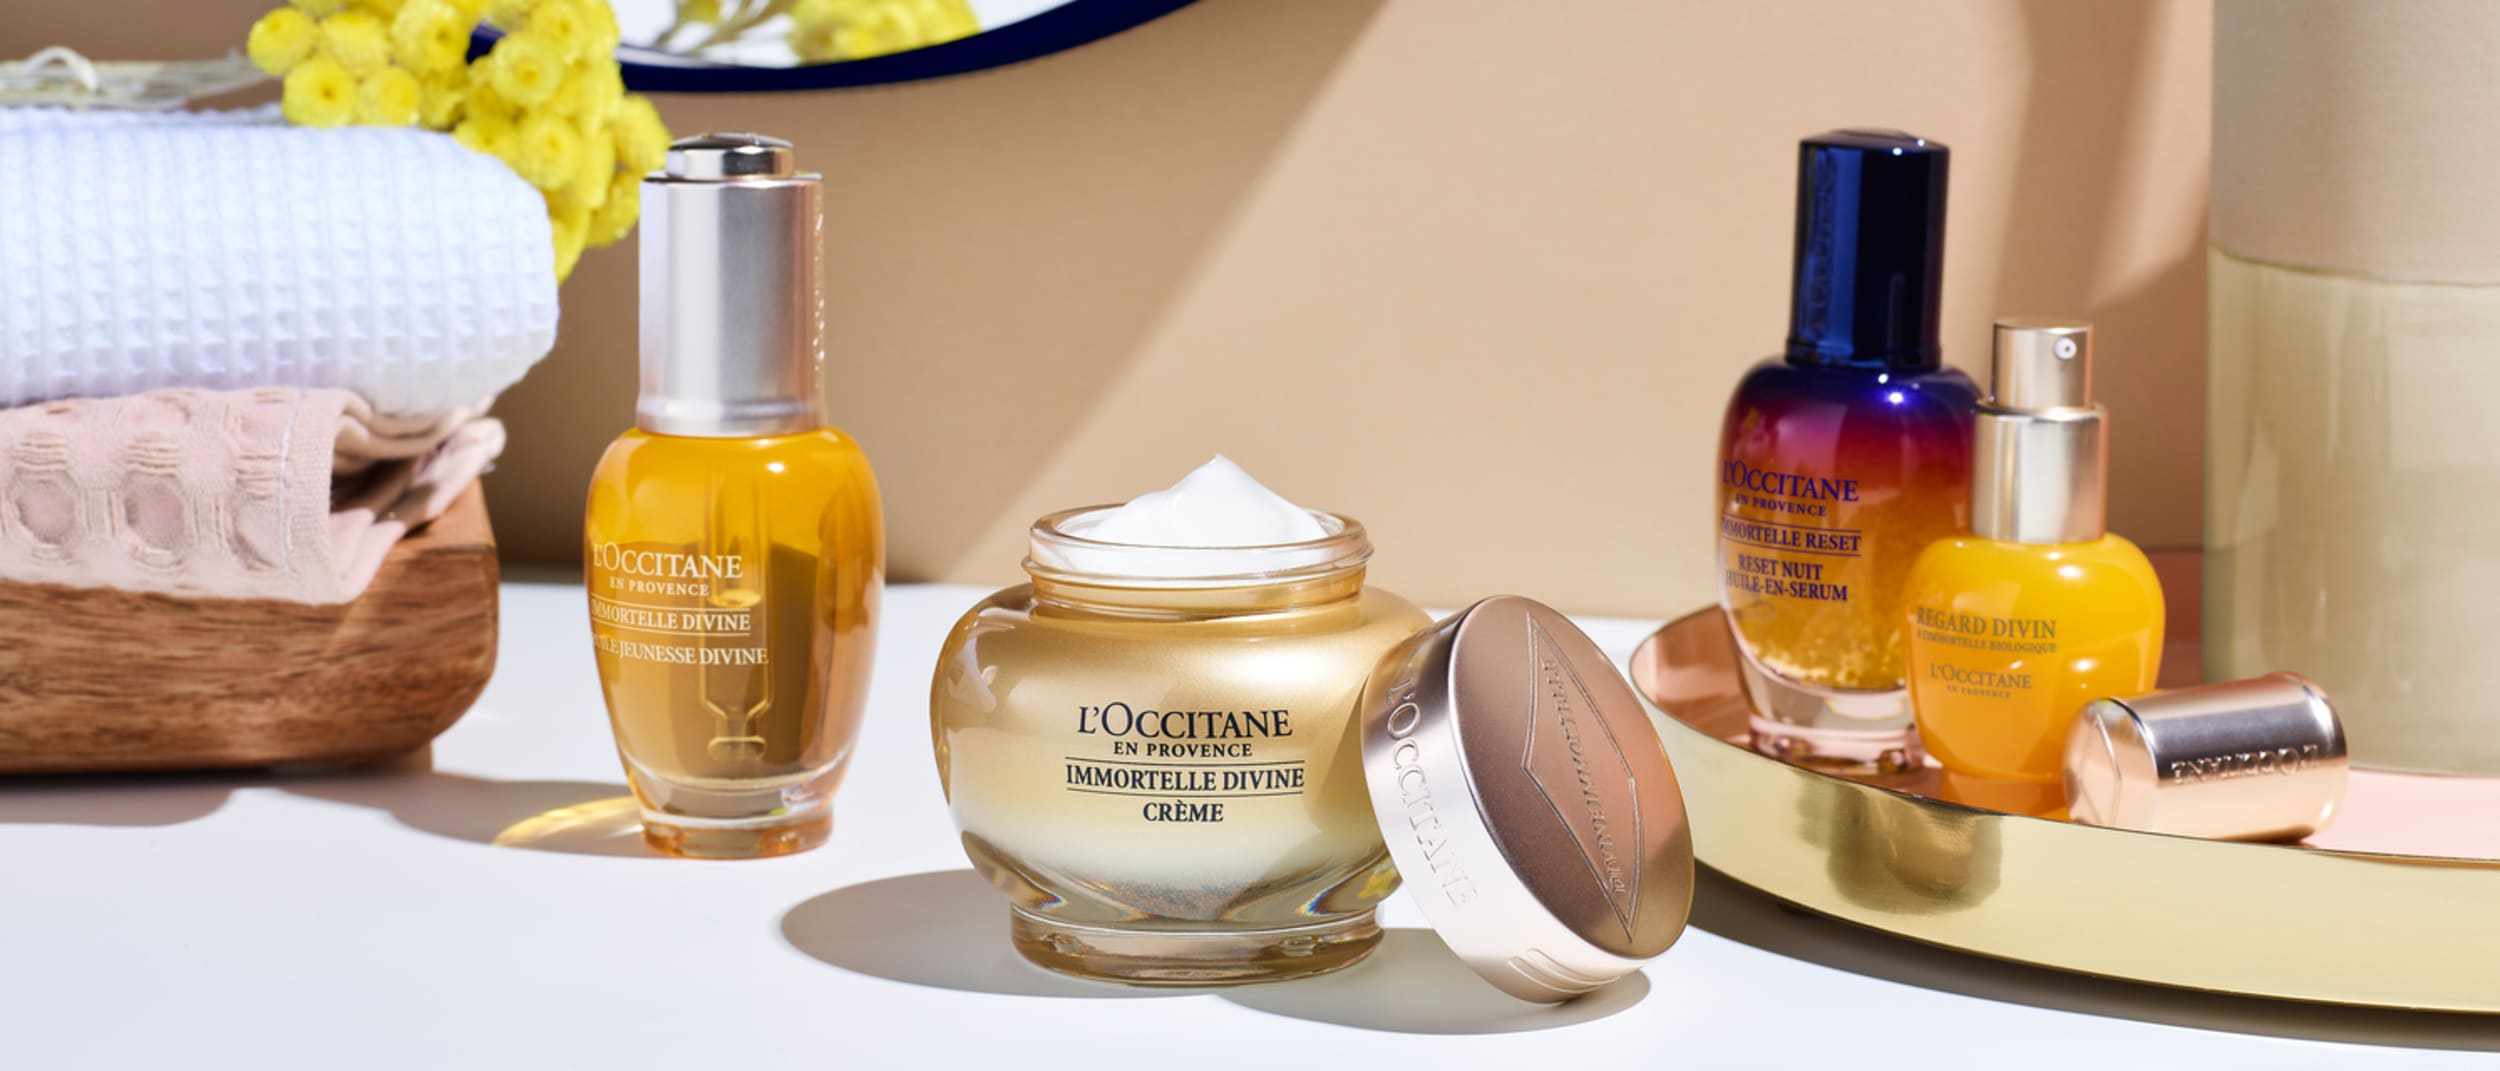 Celebrate 10 years of Divine with L'OCCITANE